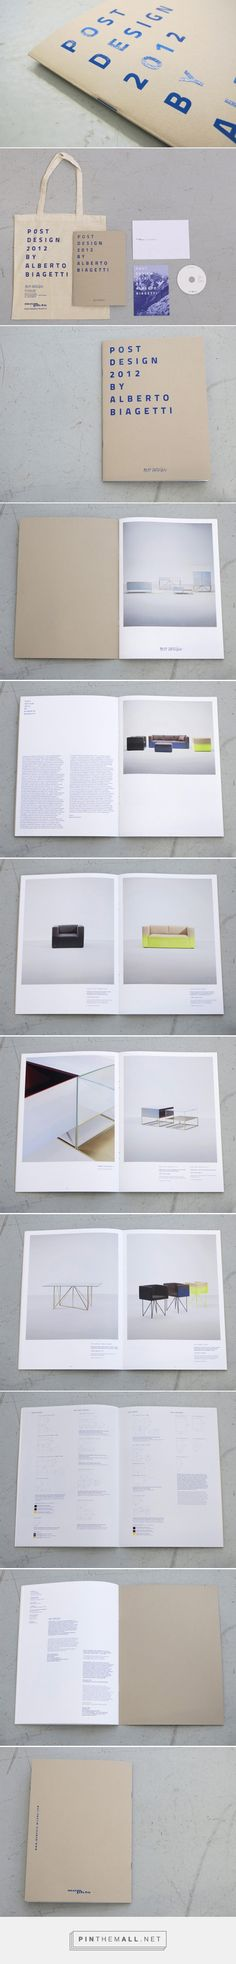 FPO: Post Design 2012 Exhibition Catalog - created via http://pinthemall.net